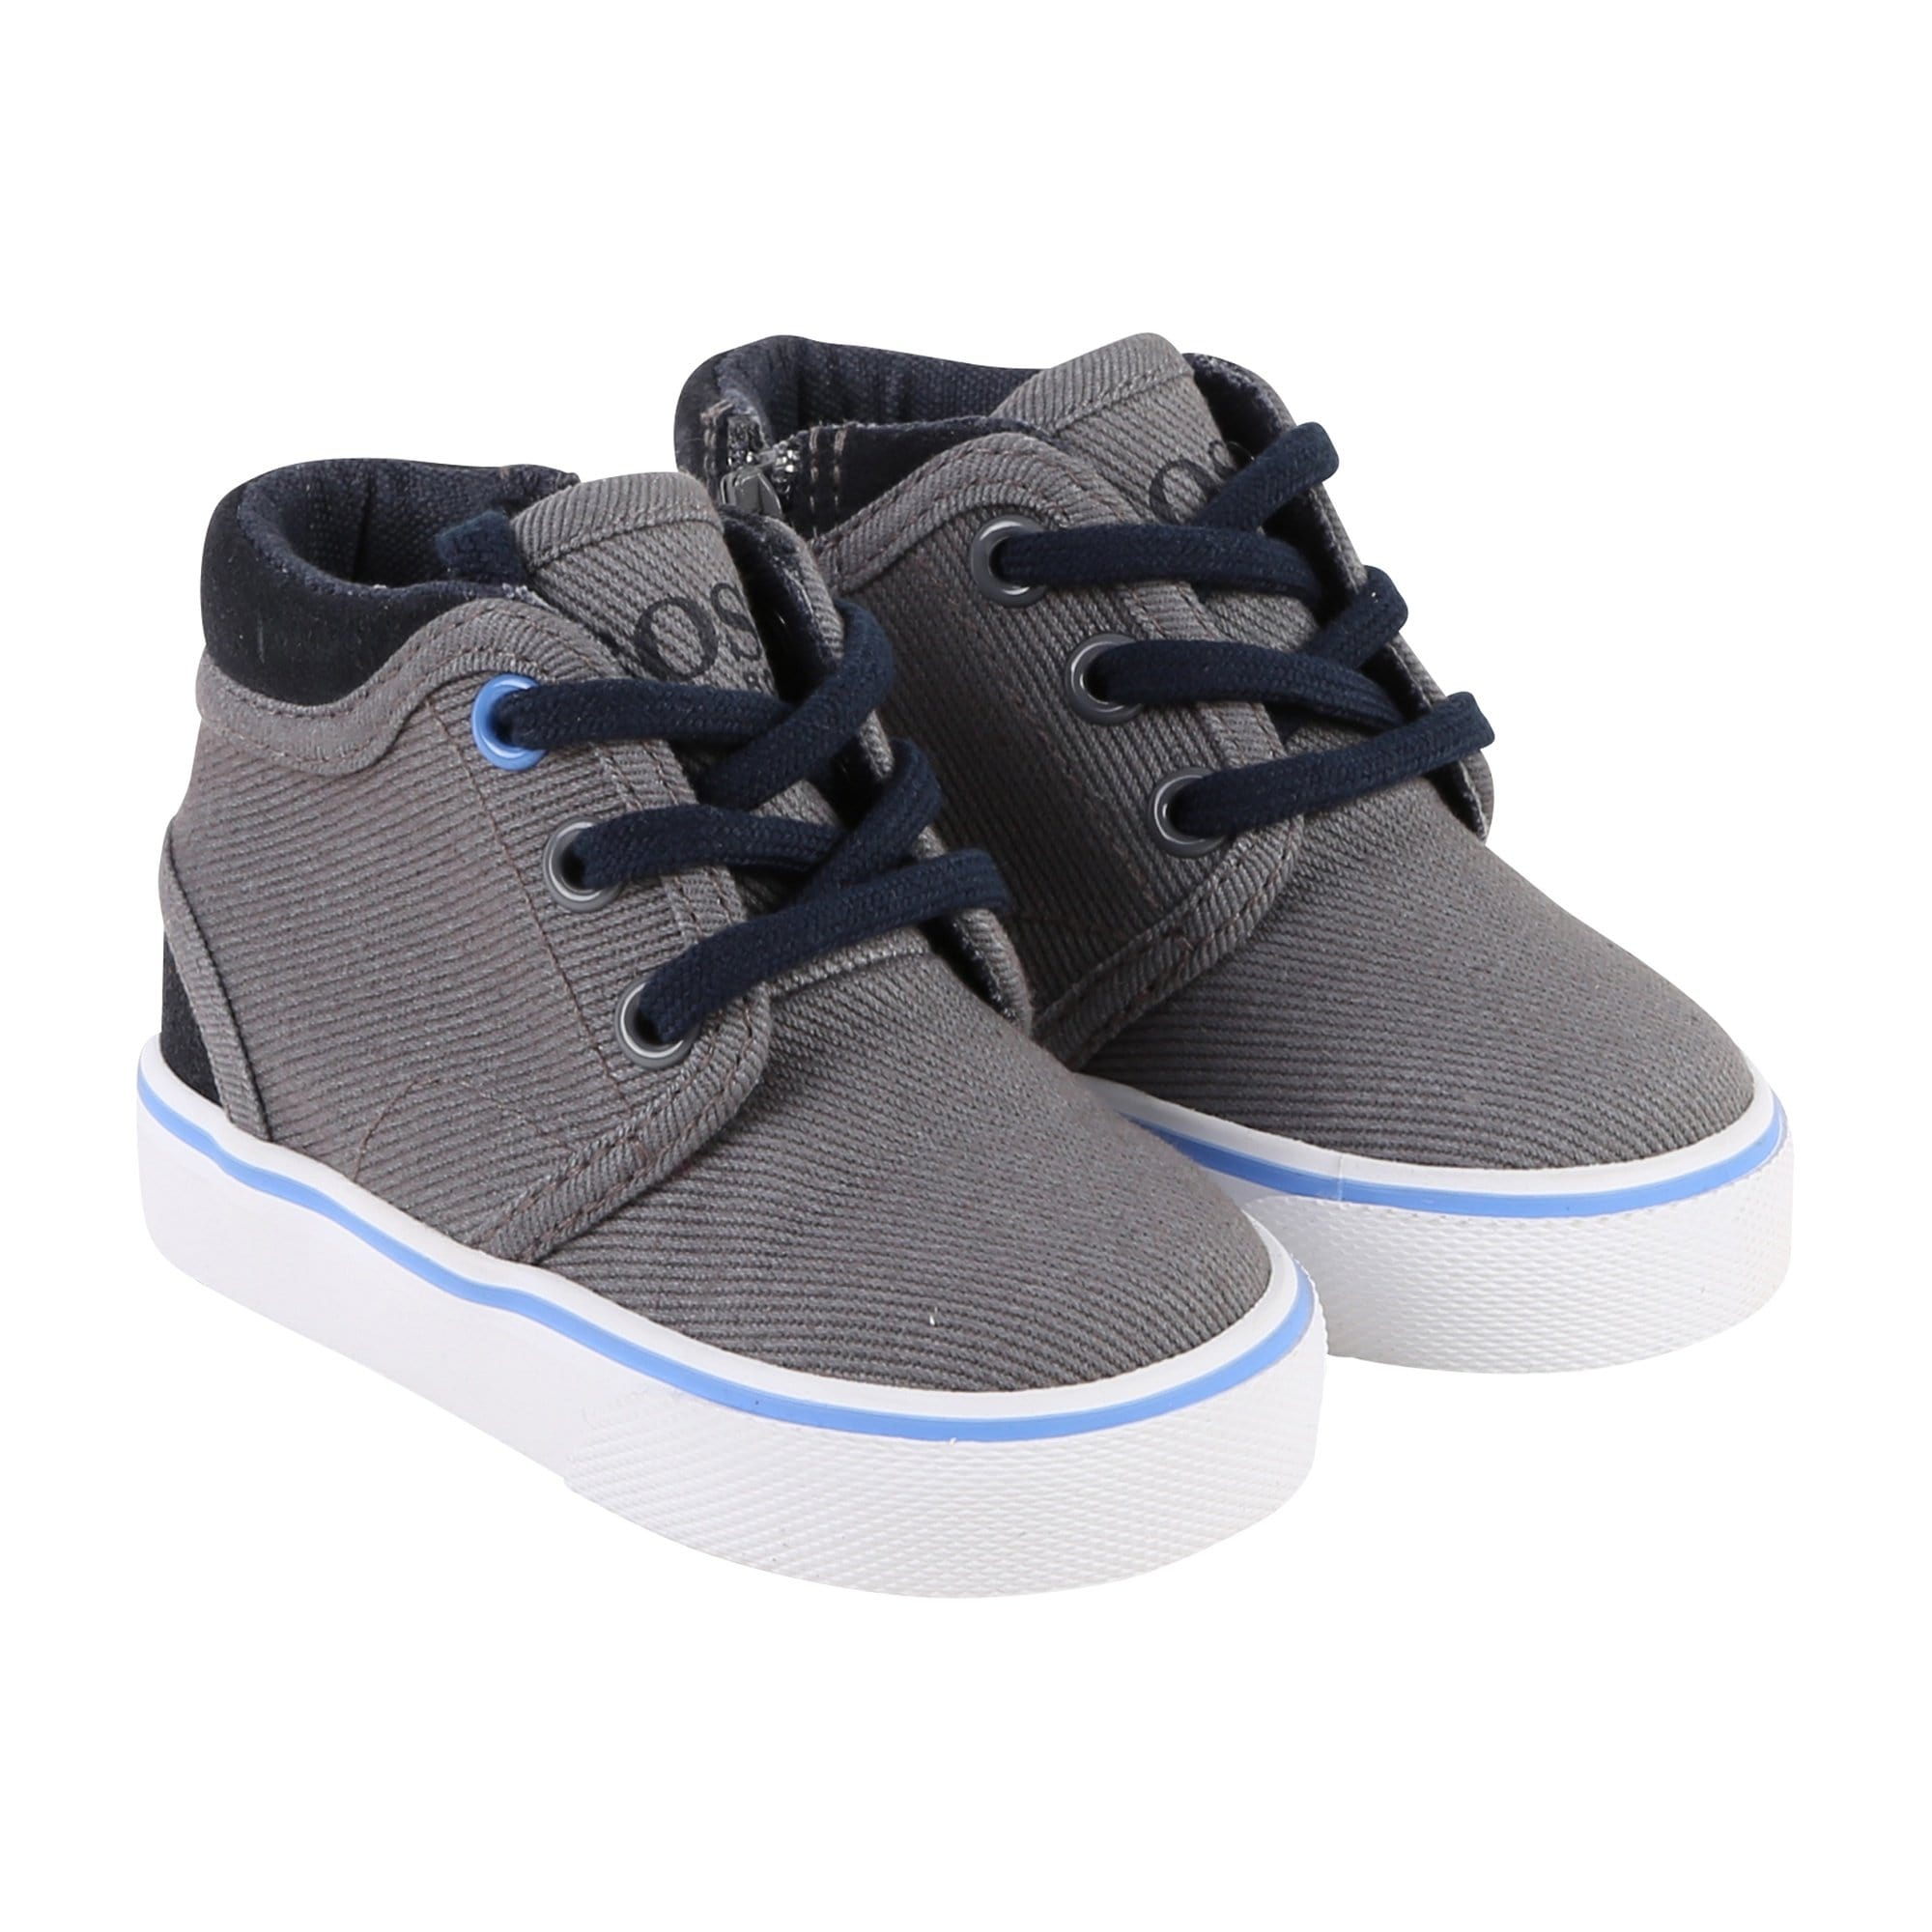 Hugo Boss Titanium High Tops Younger Boys